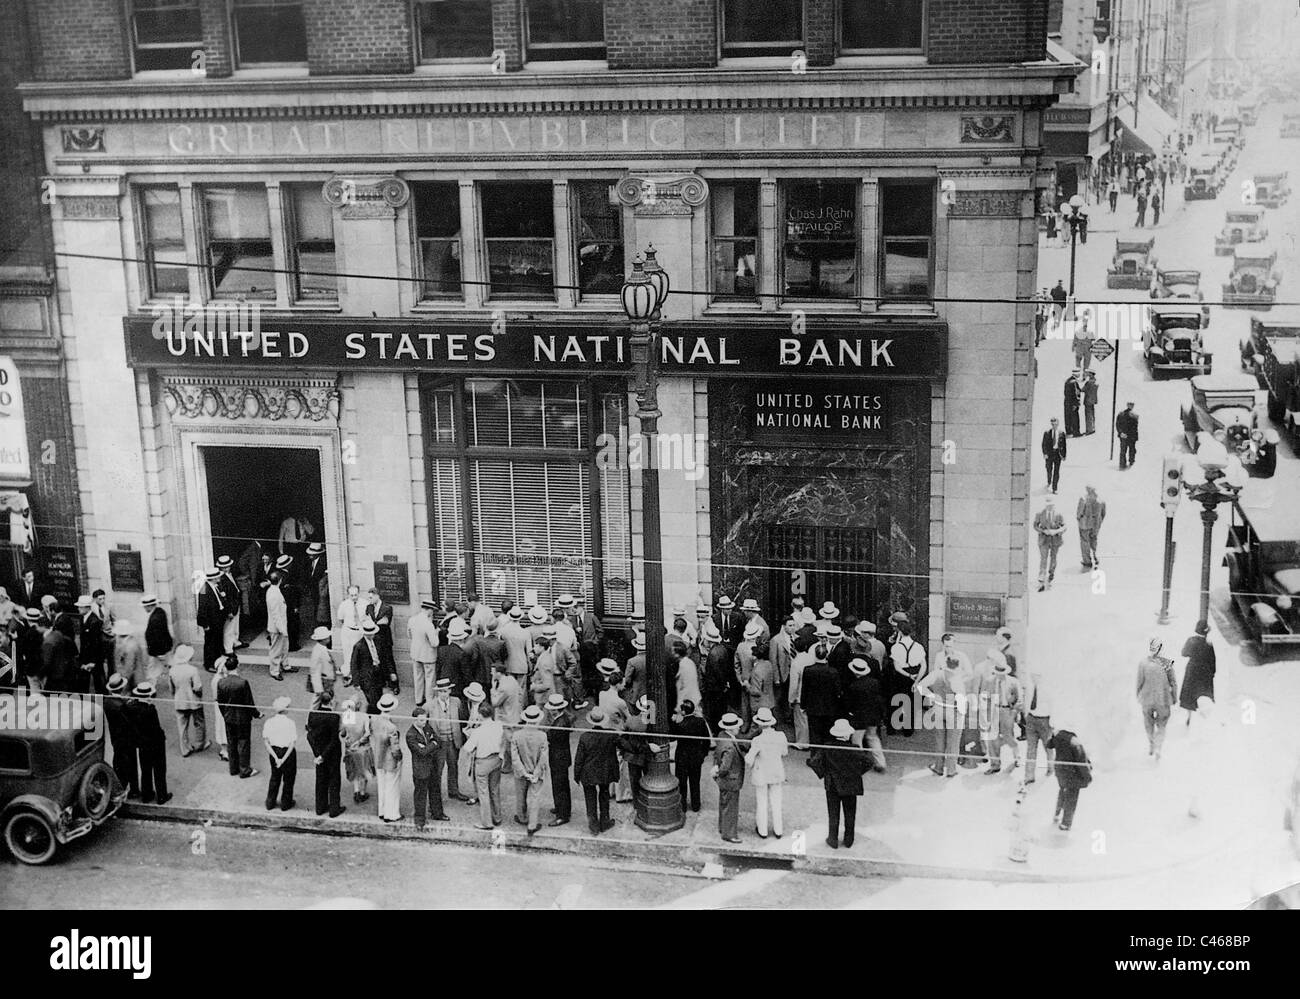 Customers in front of a closed bank during the Great Depression, 1932 - Stock Image